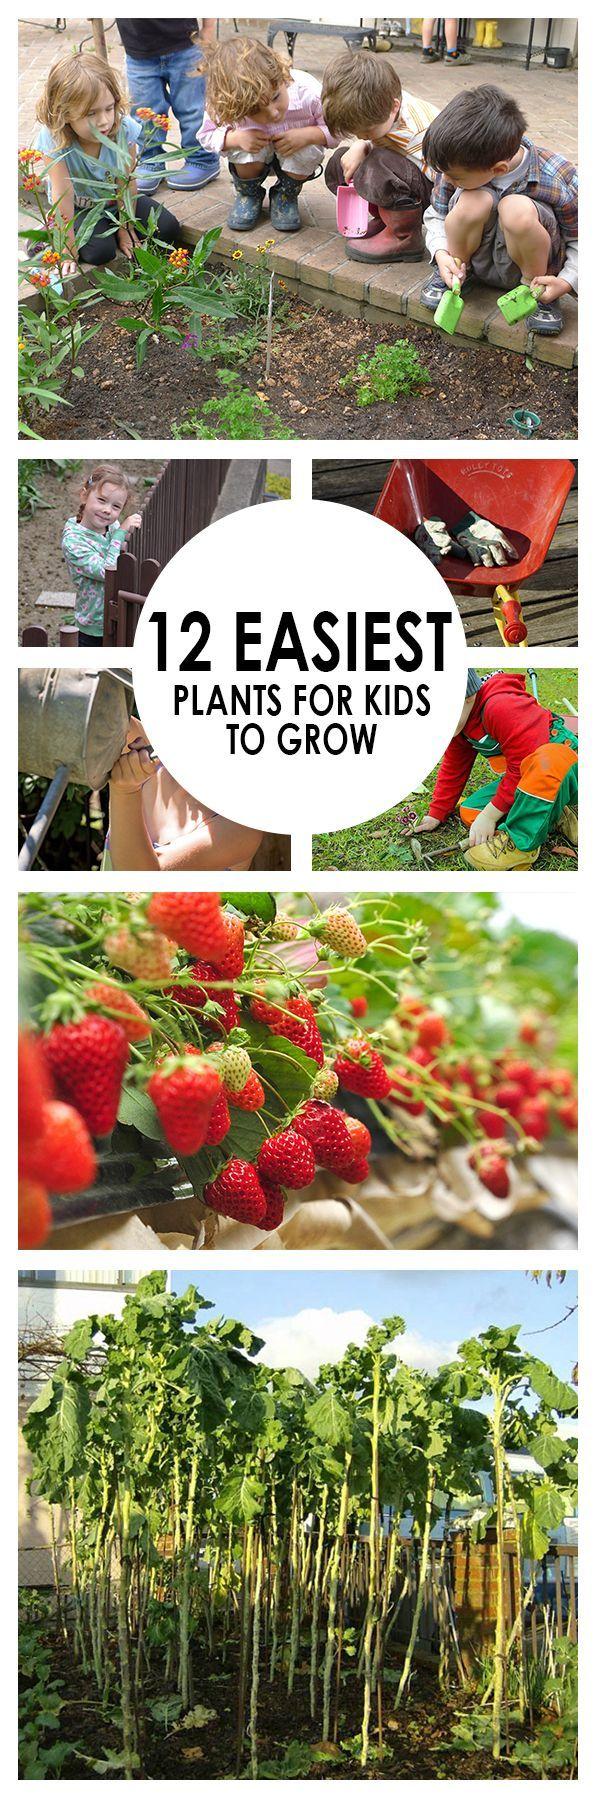 12 easiest plants for kids to grow